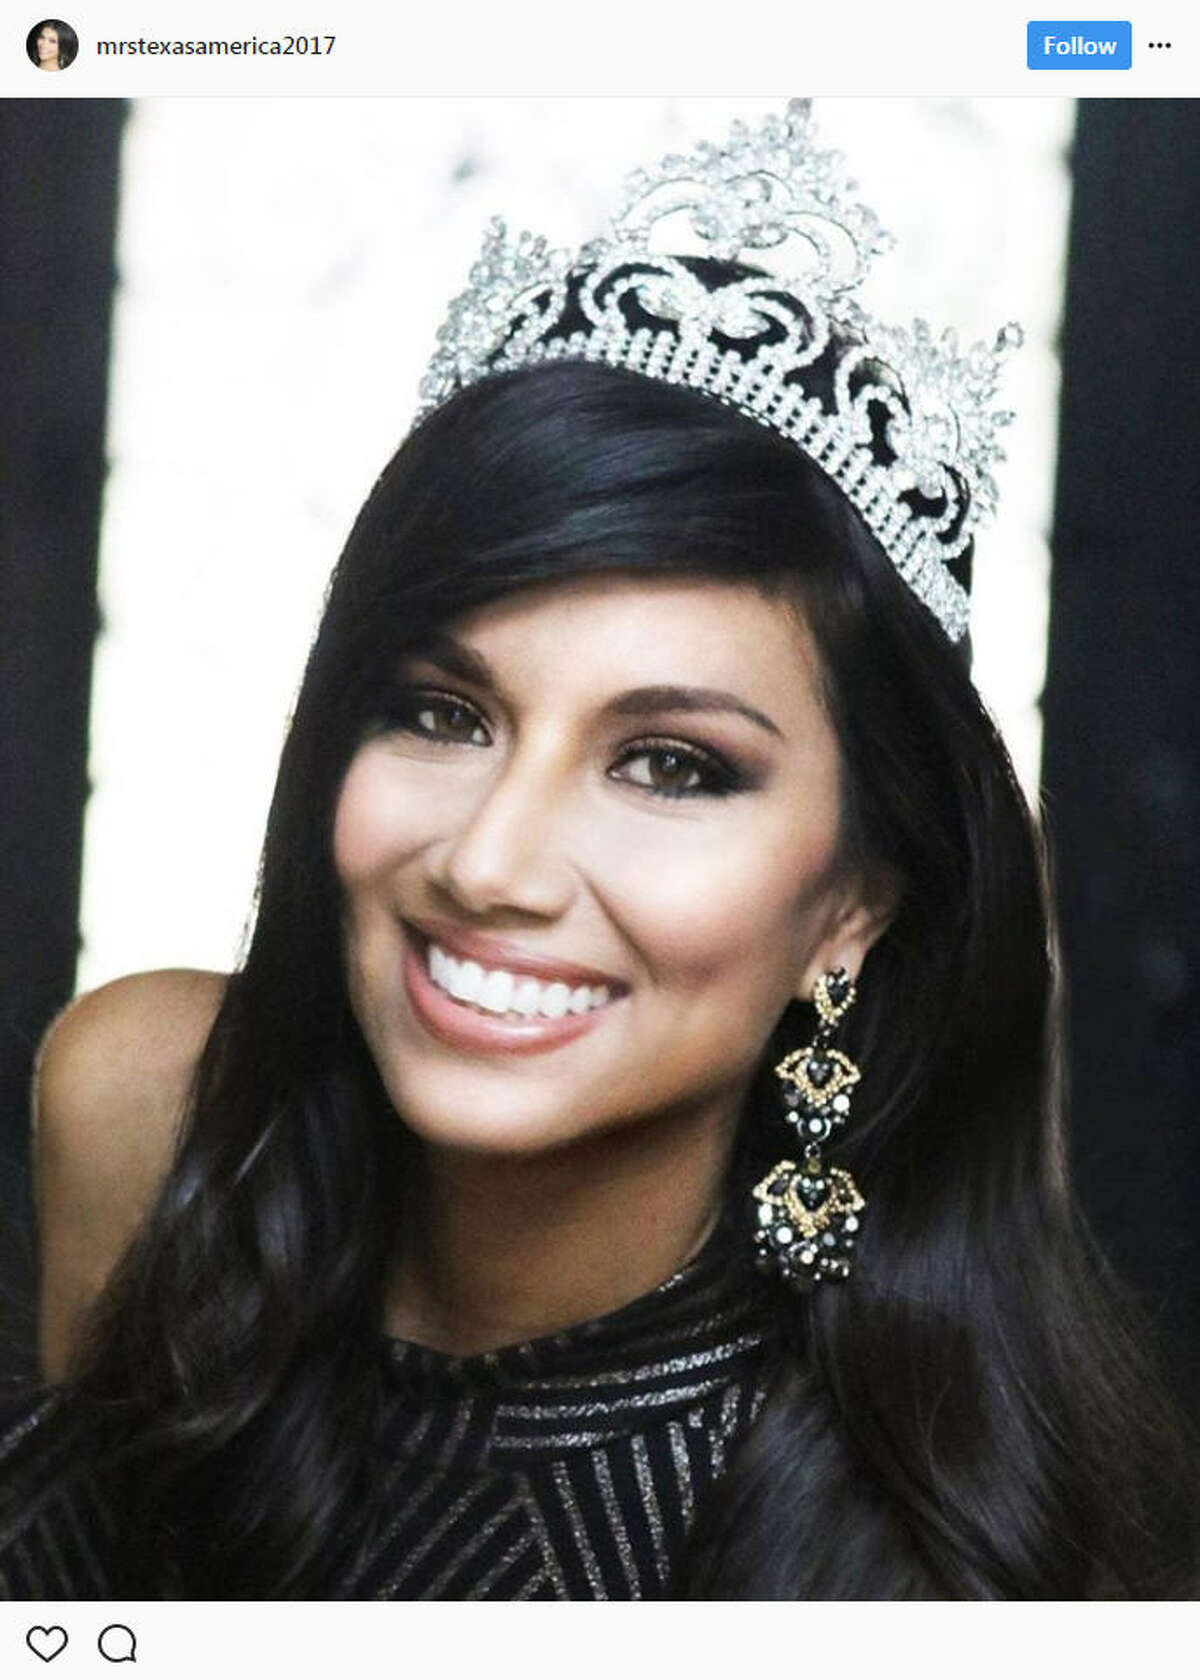 On Saturday, August 19, the Mrs. America beauty pageant will begin and Mrs. Texas 2017 Sonia Segura will start her journey towards the title. Here is everything you need to know about the beauty queen representing Texas.Source: Instagram